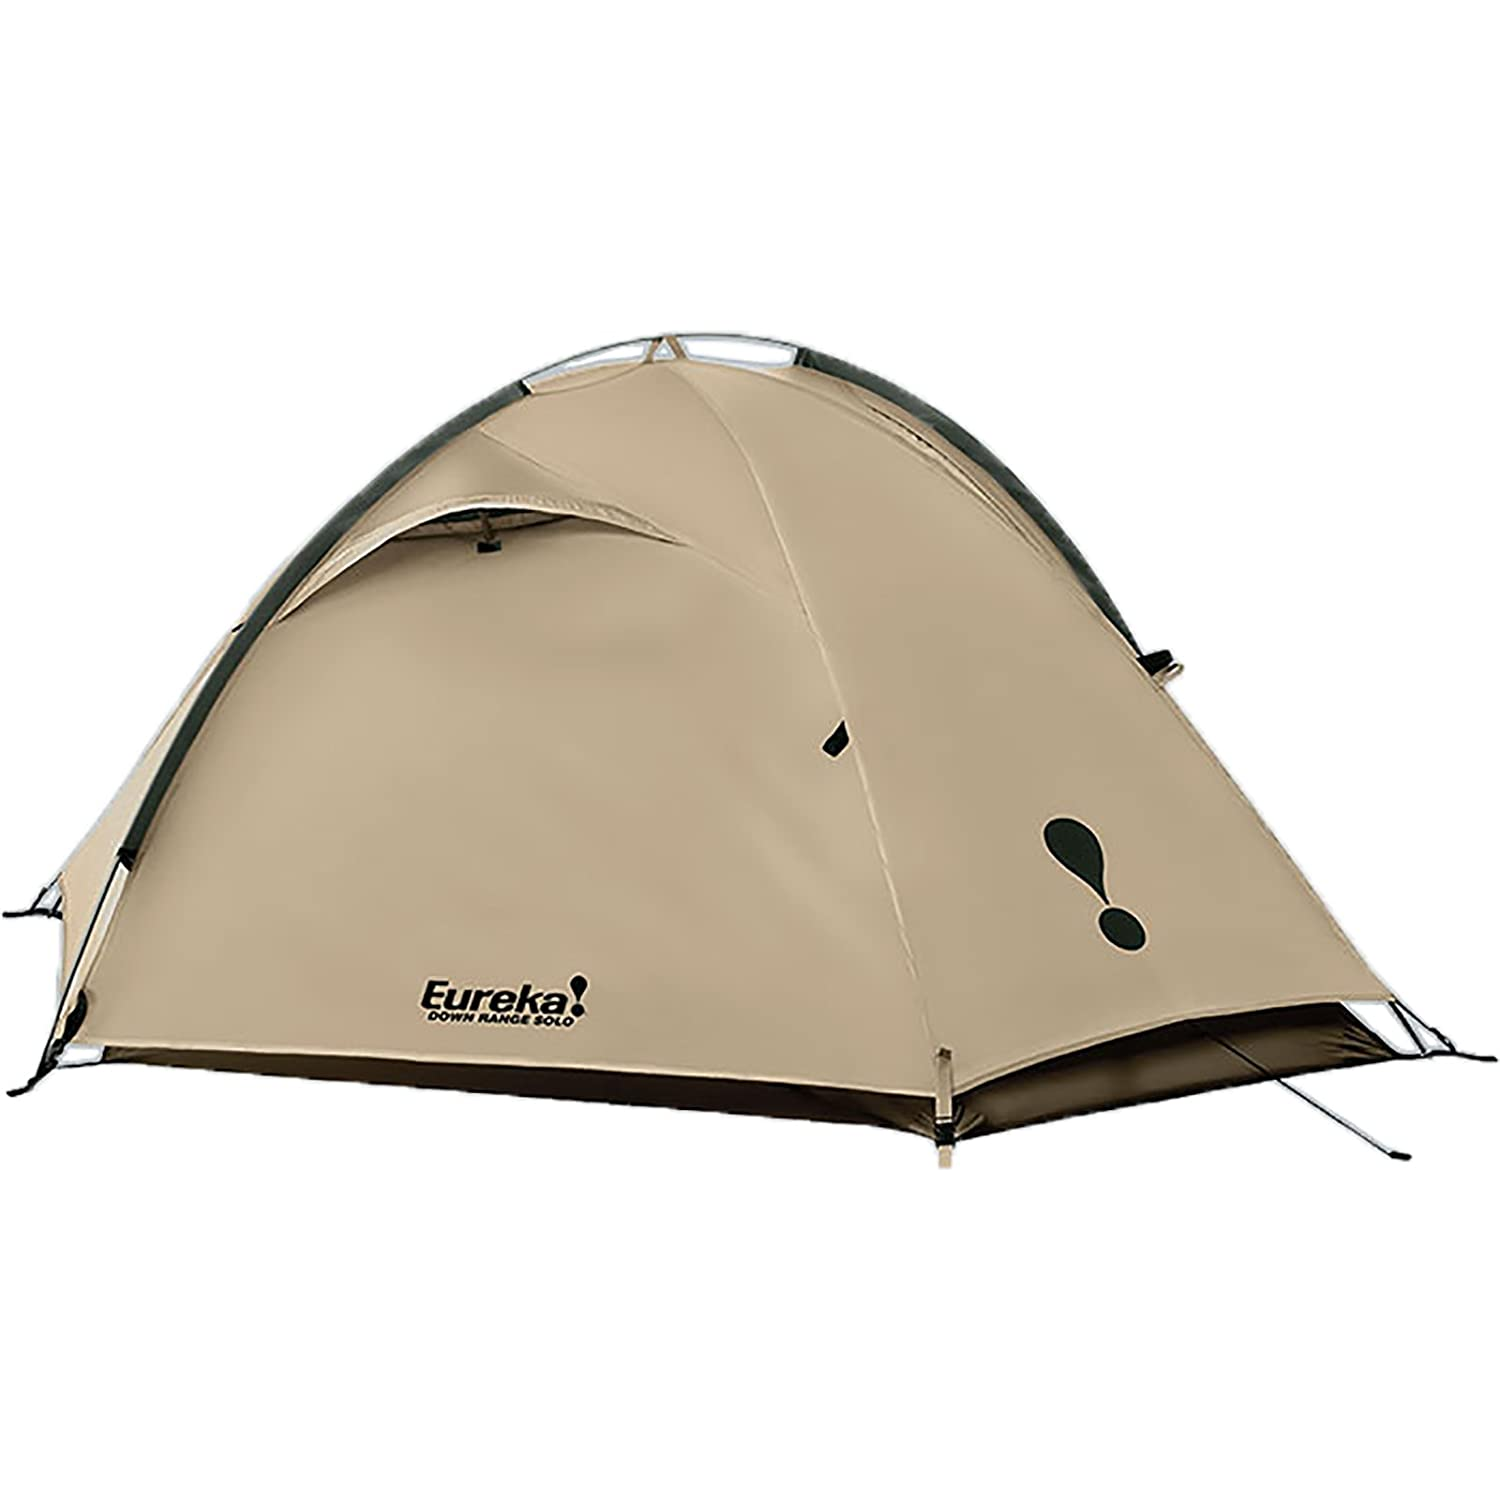 Eureka Down Range Solo - 1 Person Tactical (TCOP) Tent  sc 1 st  Amazon.com & Amazon.com : EUREKA Amari Pass 3 Person Tent Lime/Grey Green One ...